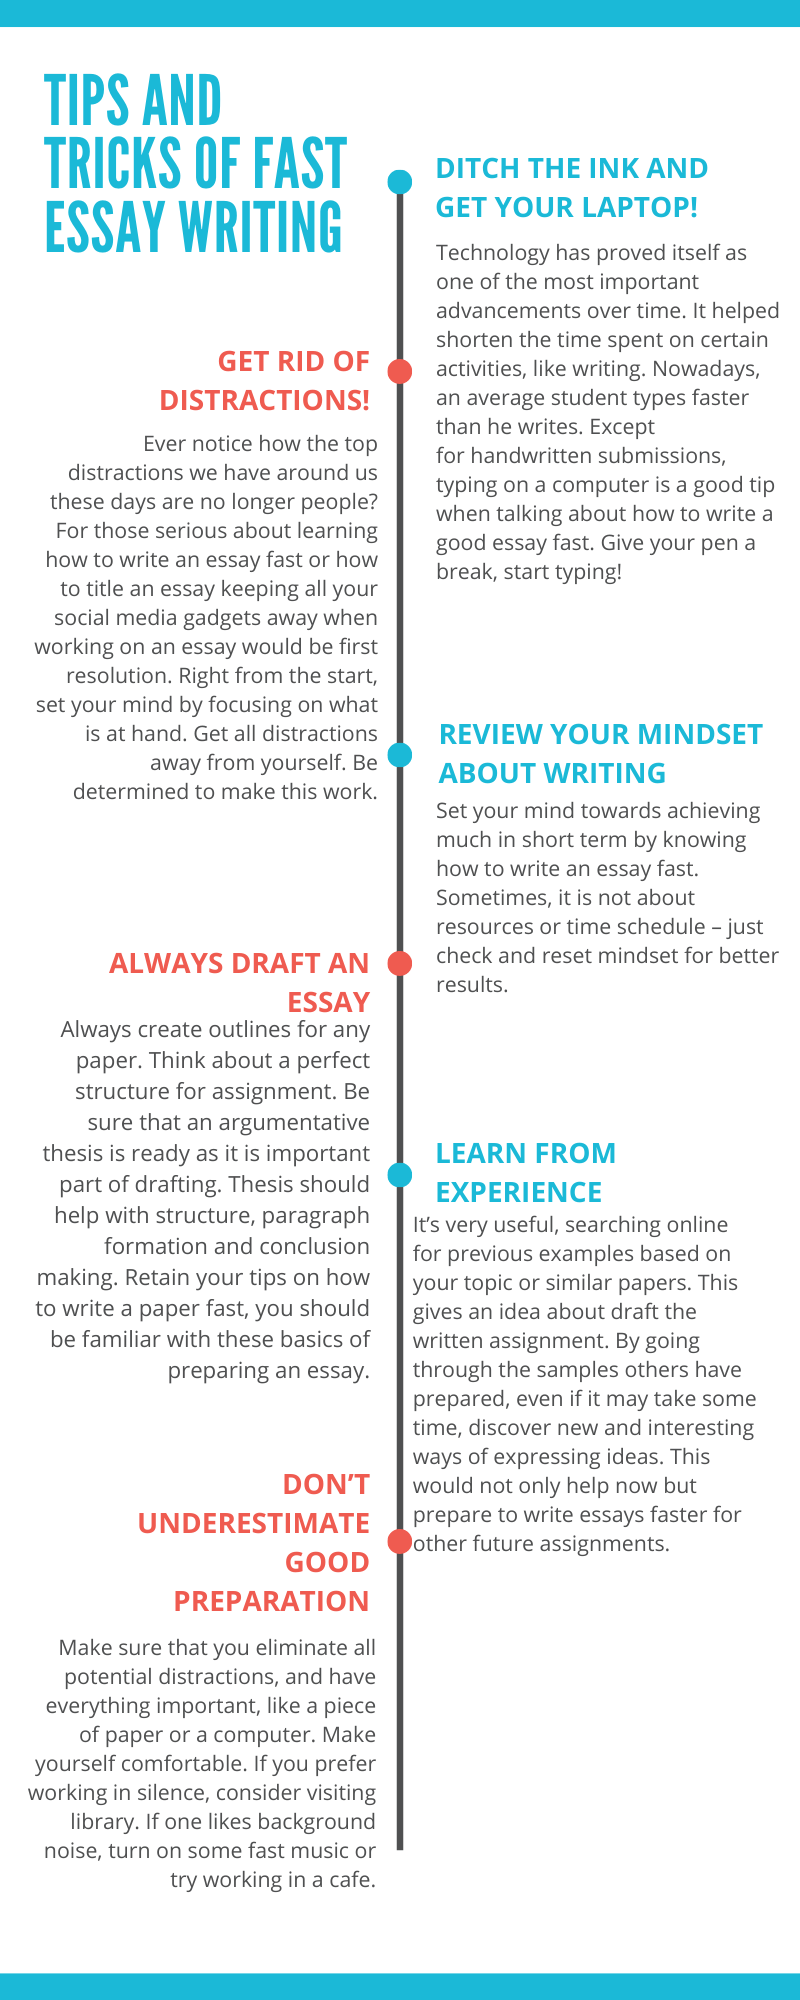 How to write college essays faster best thesis statement editing websites for school